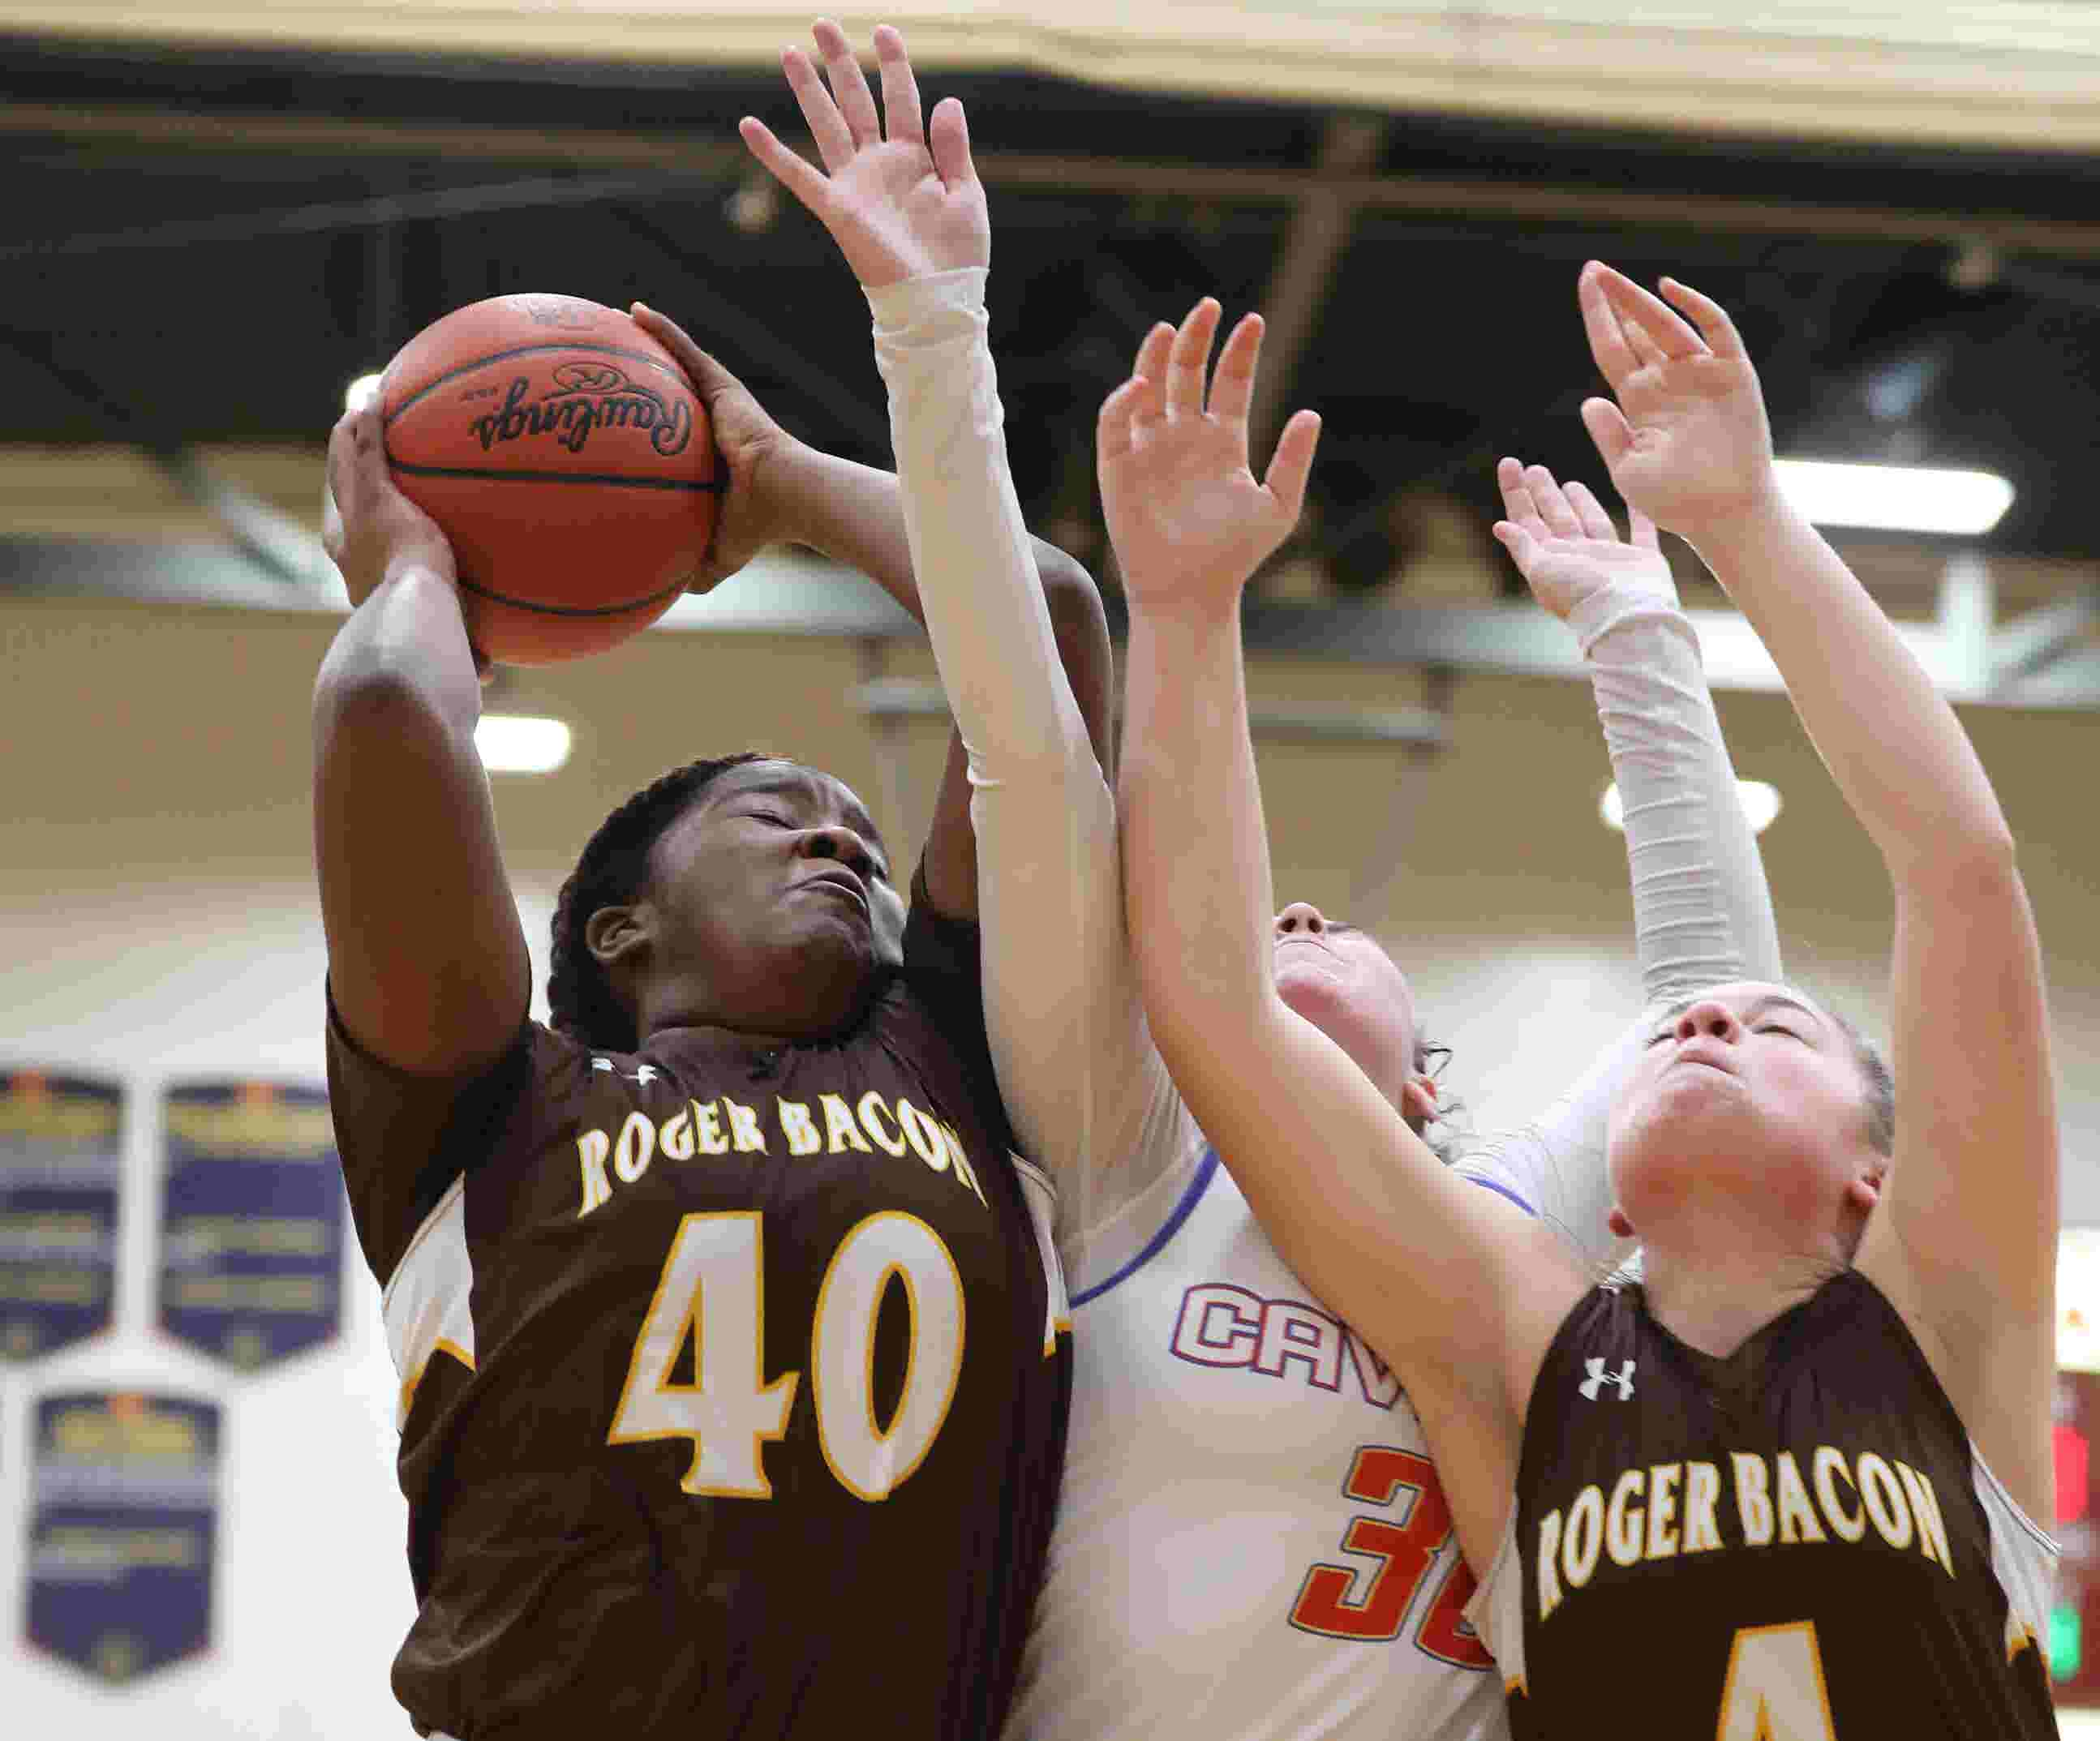 WATCH: Roger Bacon girls basketball hoping for district title